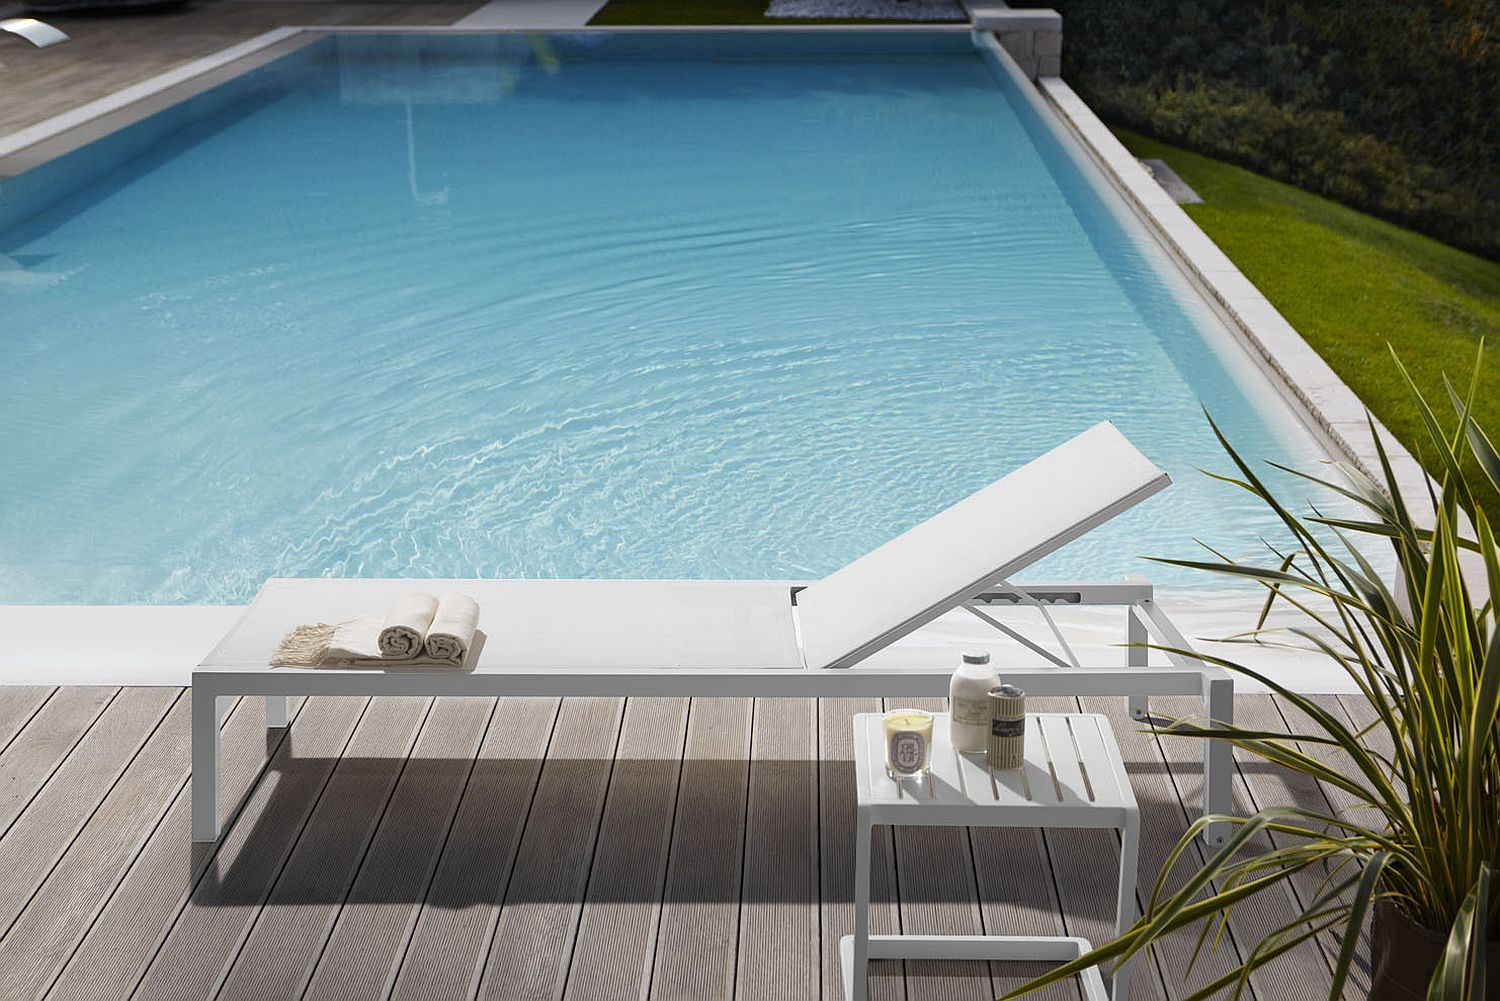 Relaxing lounger from the Samba Rio Collection